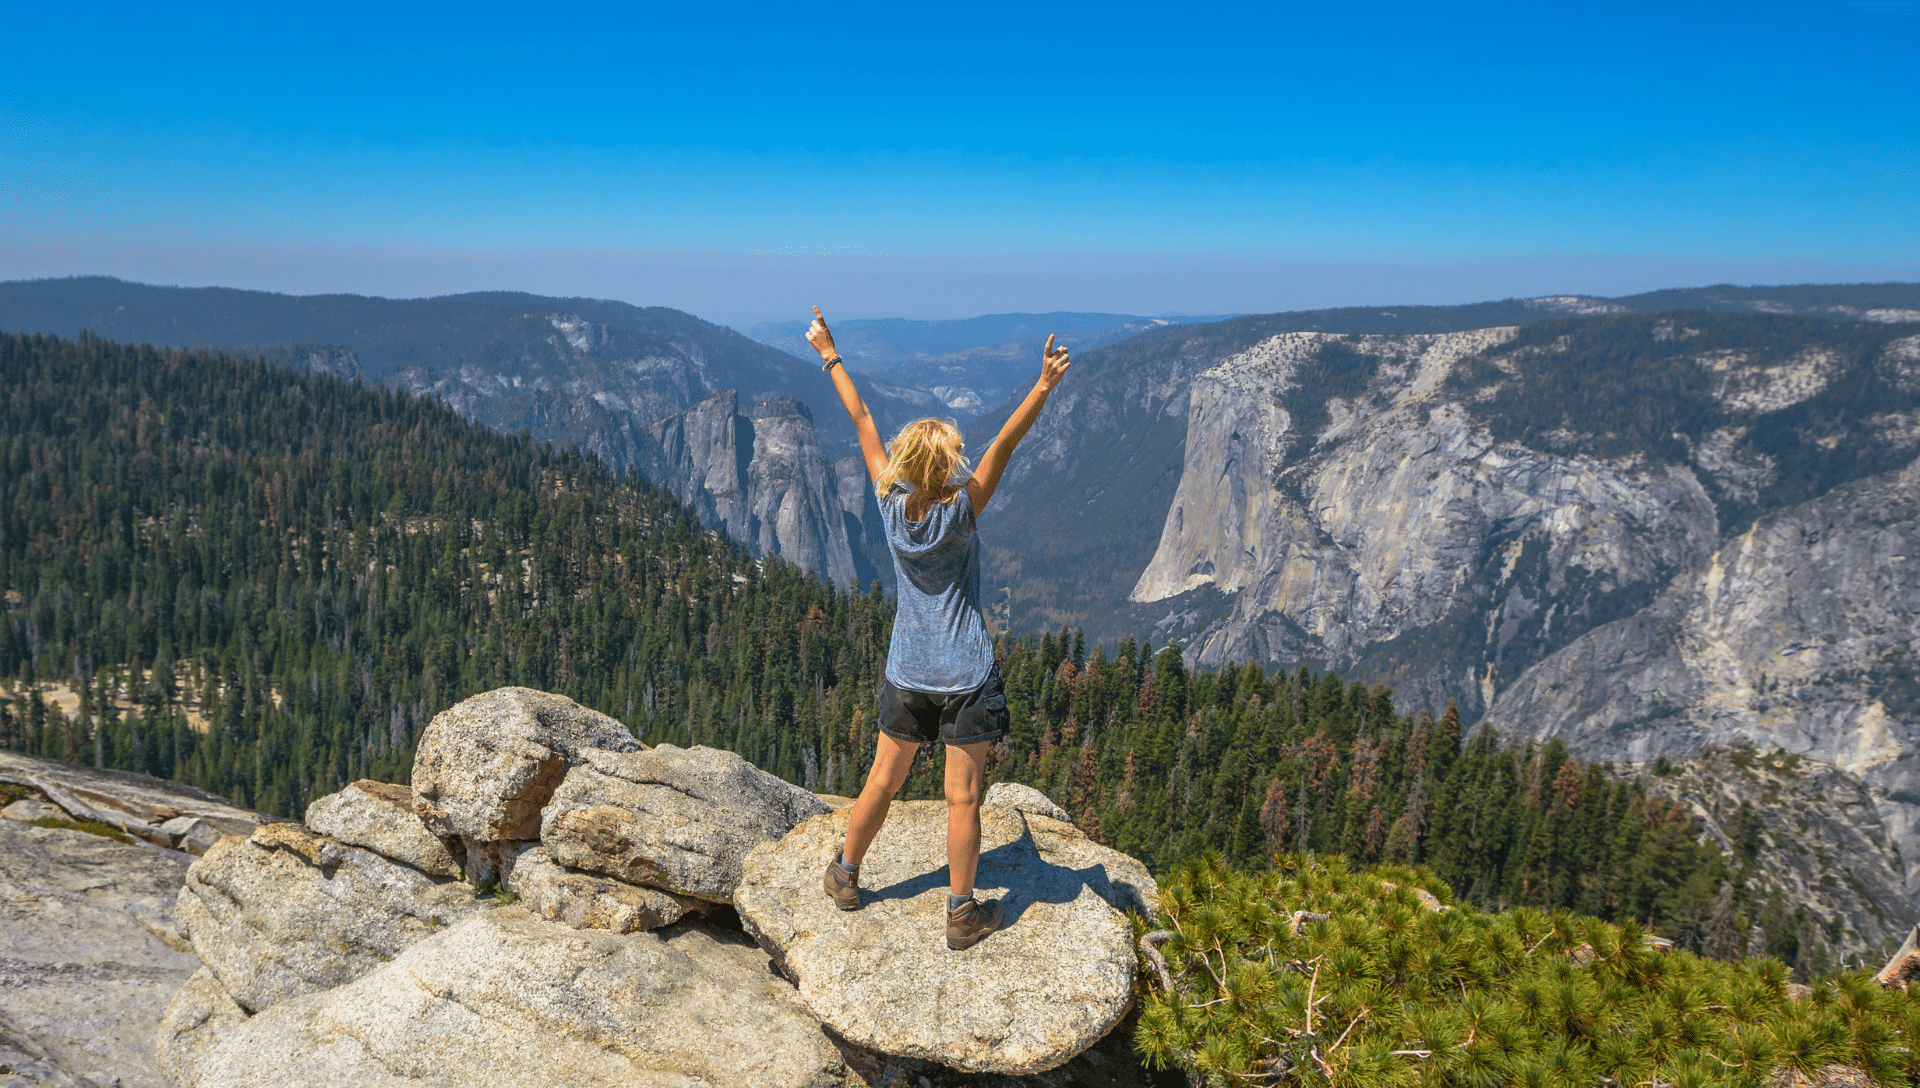 A female hiker stands on a large rock in a valley, surrounded by mountains in Yosemite National Park. She has her hands held high above her head in awe of the view.